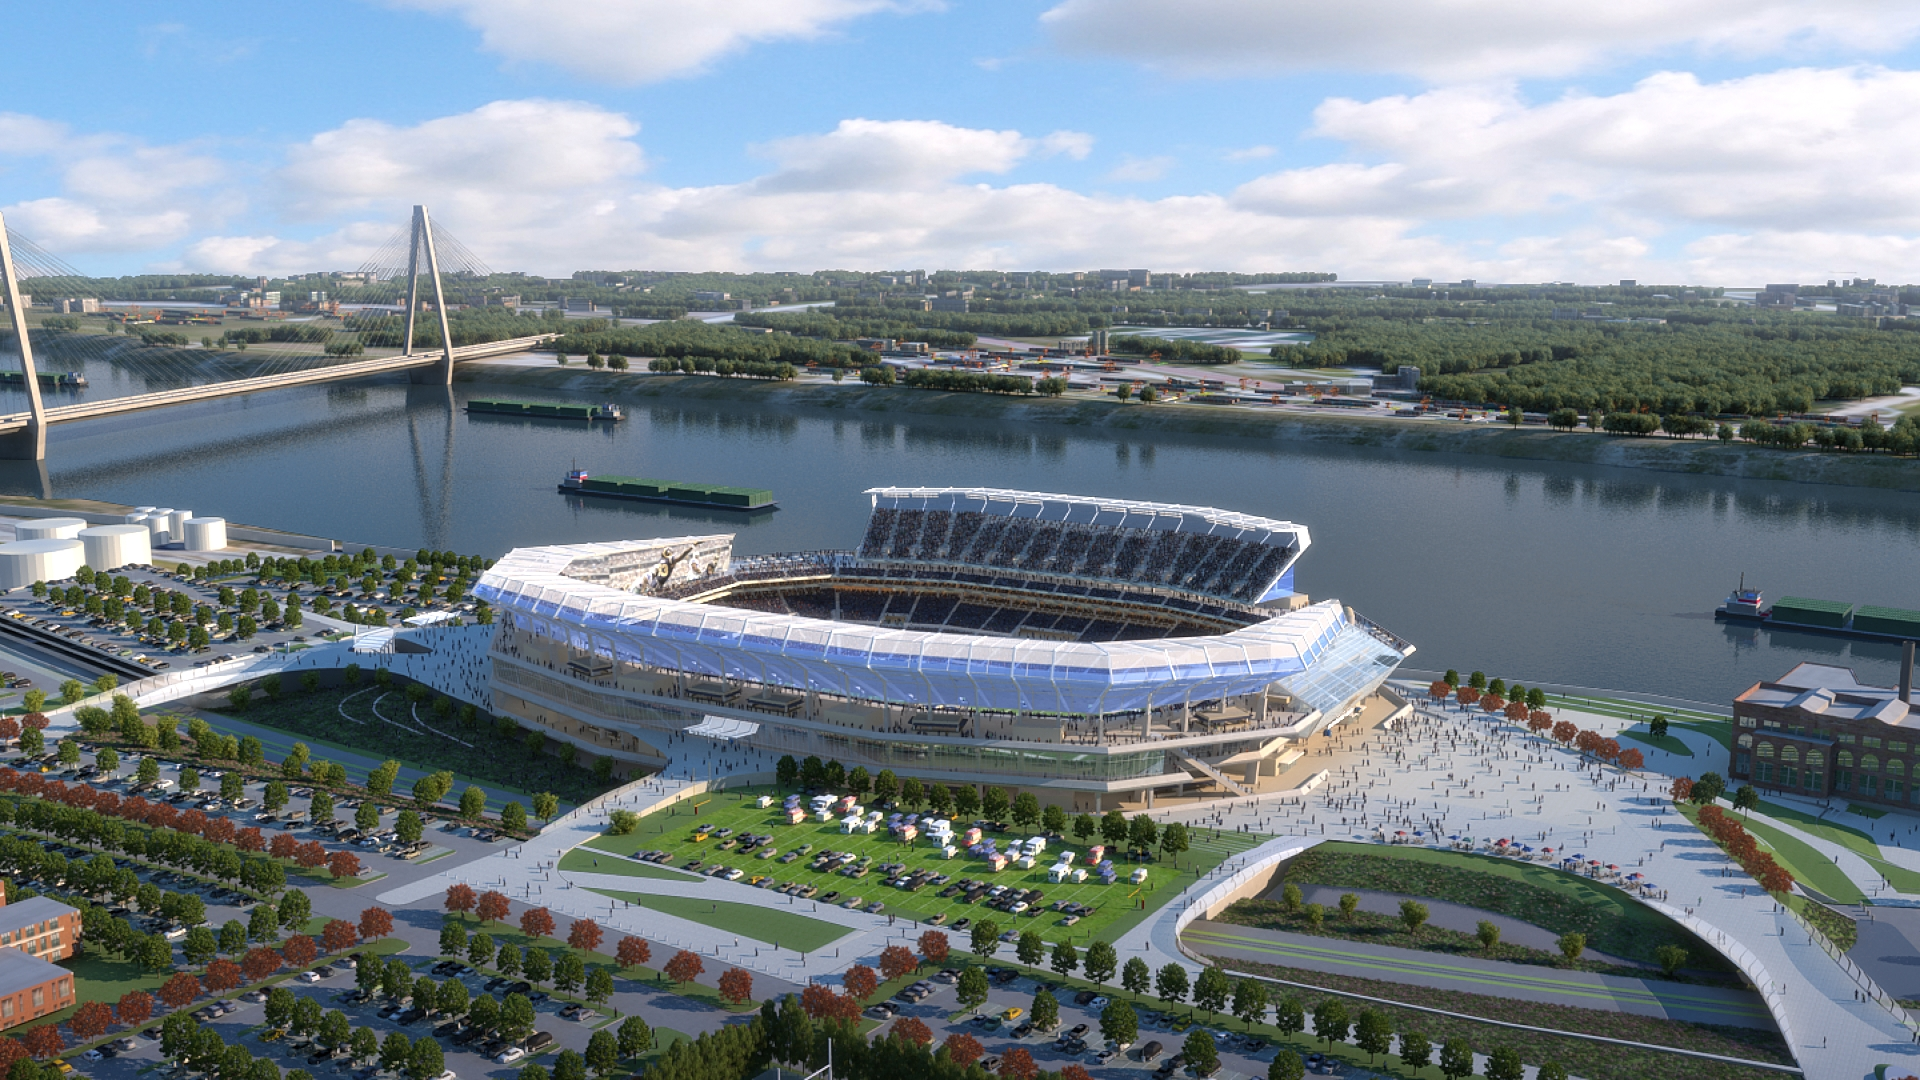 NFL stadium proposal - St. Louis, MO 04/23/2015